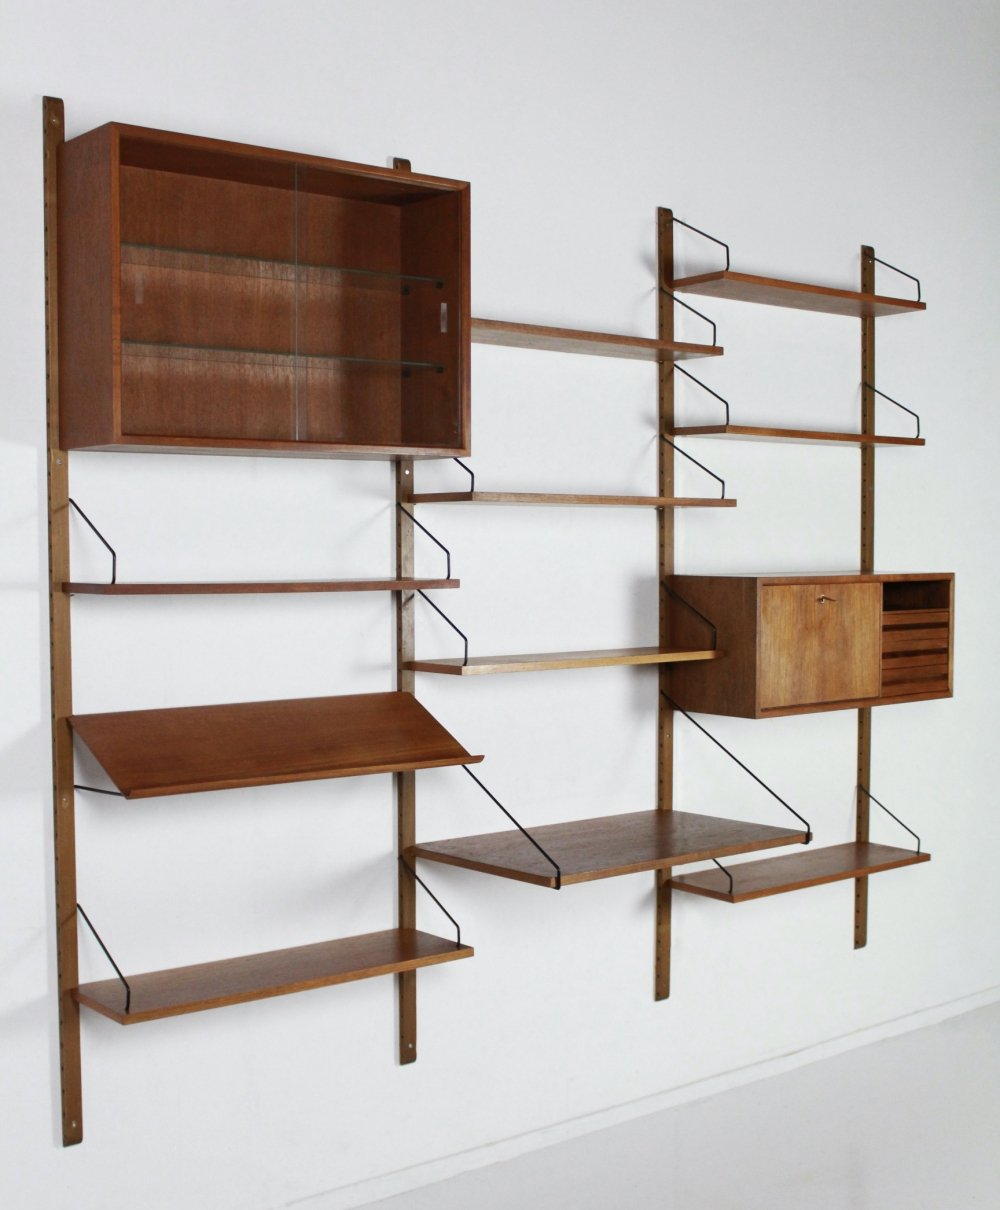 Royal System wall unit by Poul Cadovius for Cado, Denmark